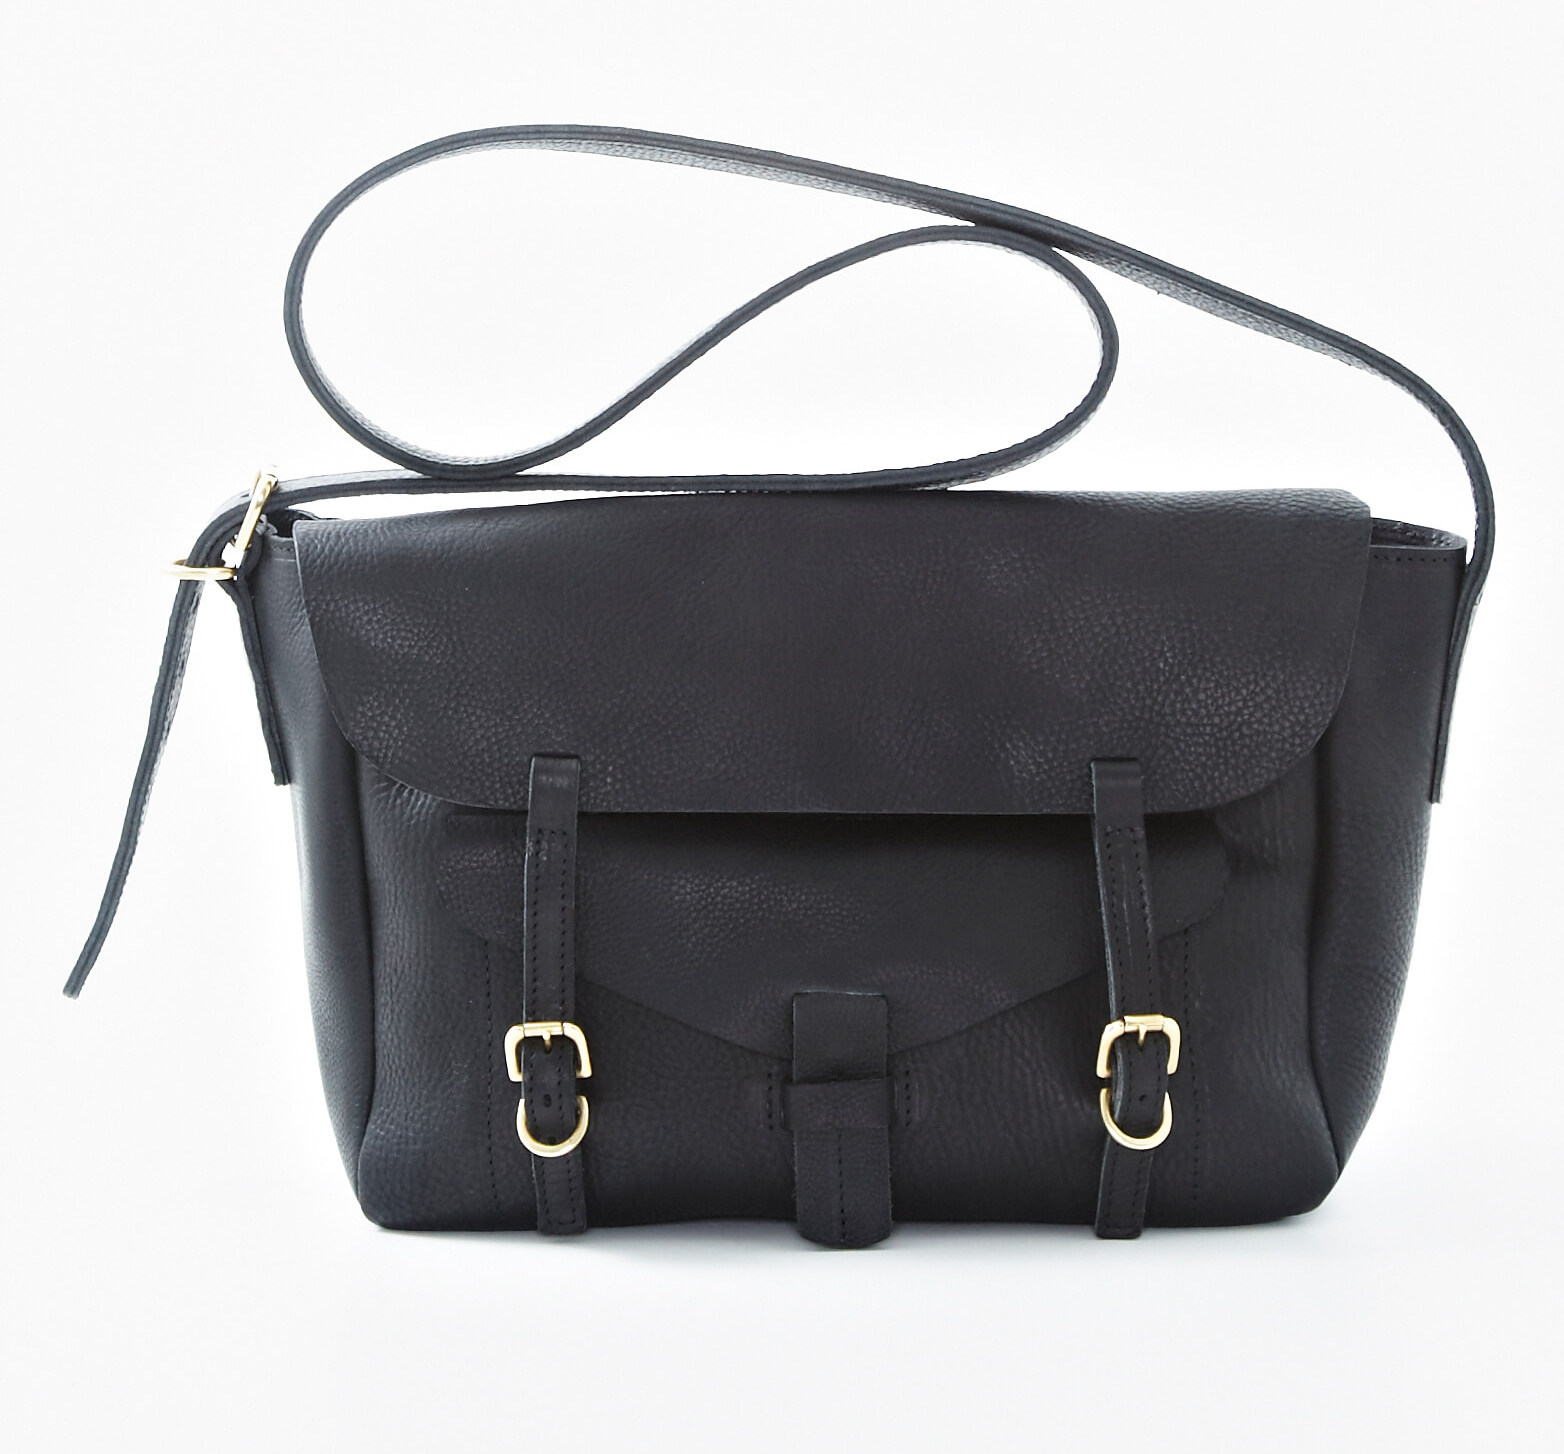 black-leather-satchel-gold-buckles-with-flaps.jpg